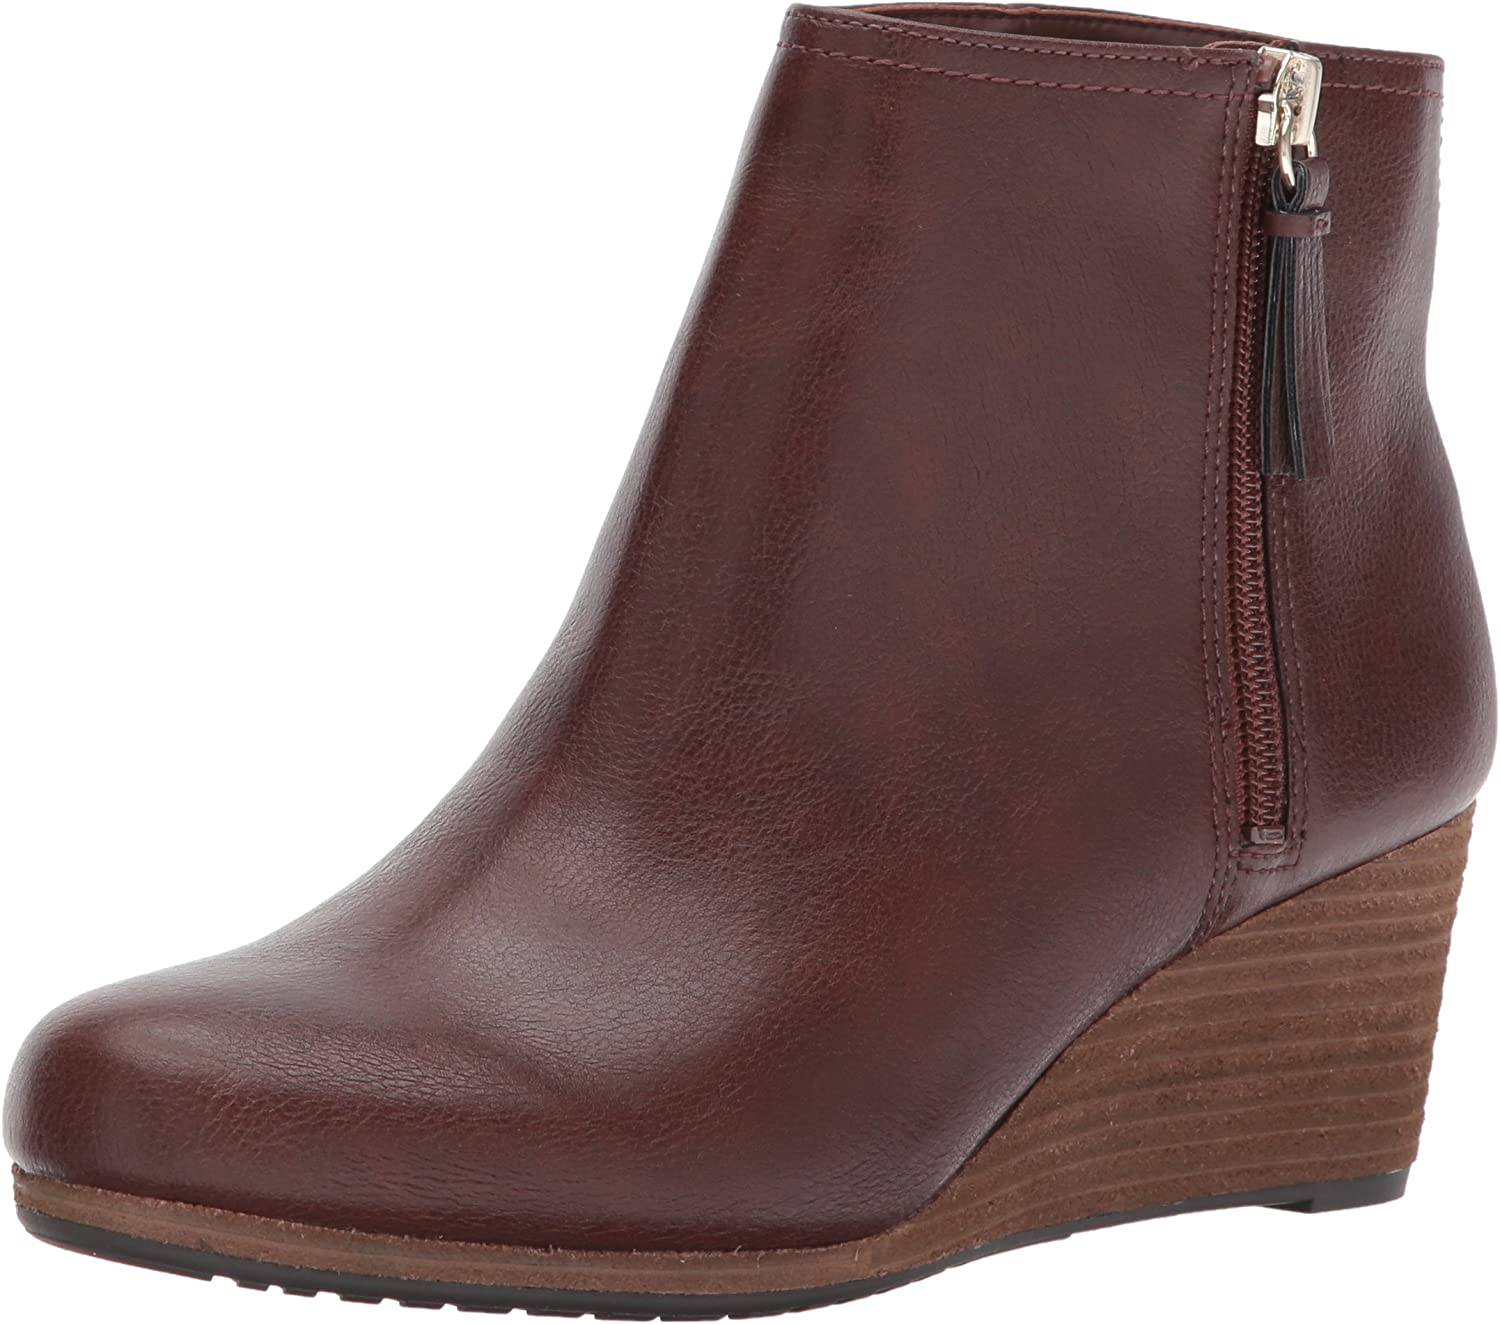 Dr. Scholl's Womens Dwell Ankle Boots